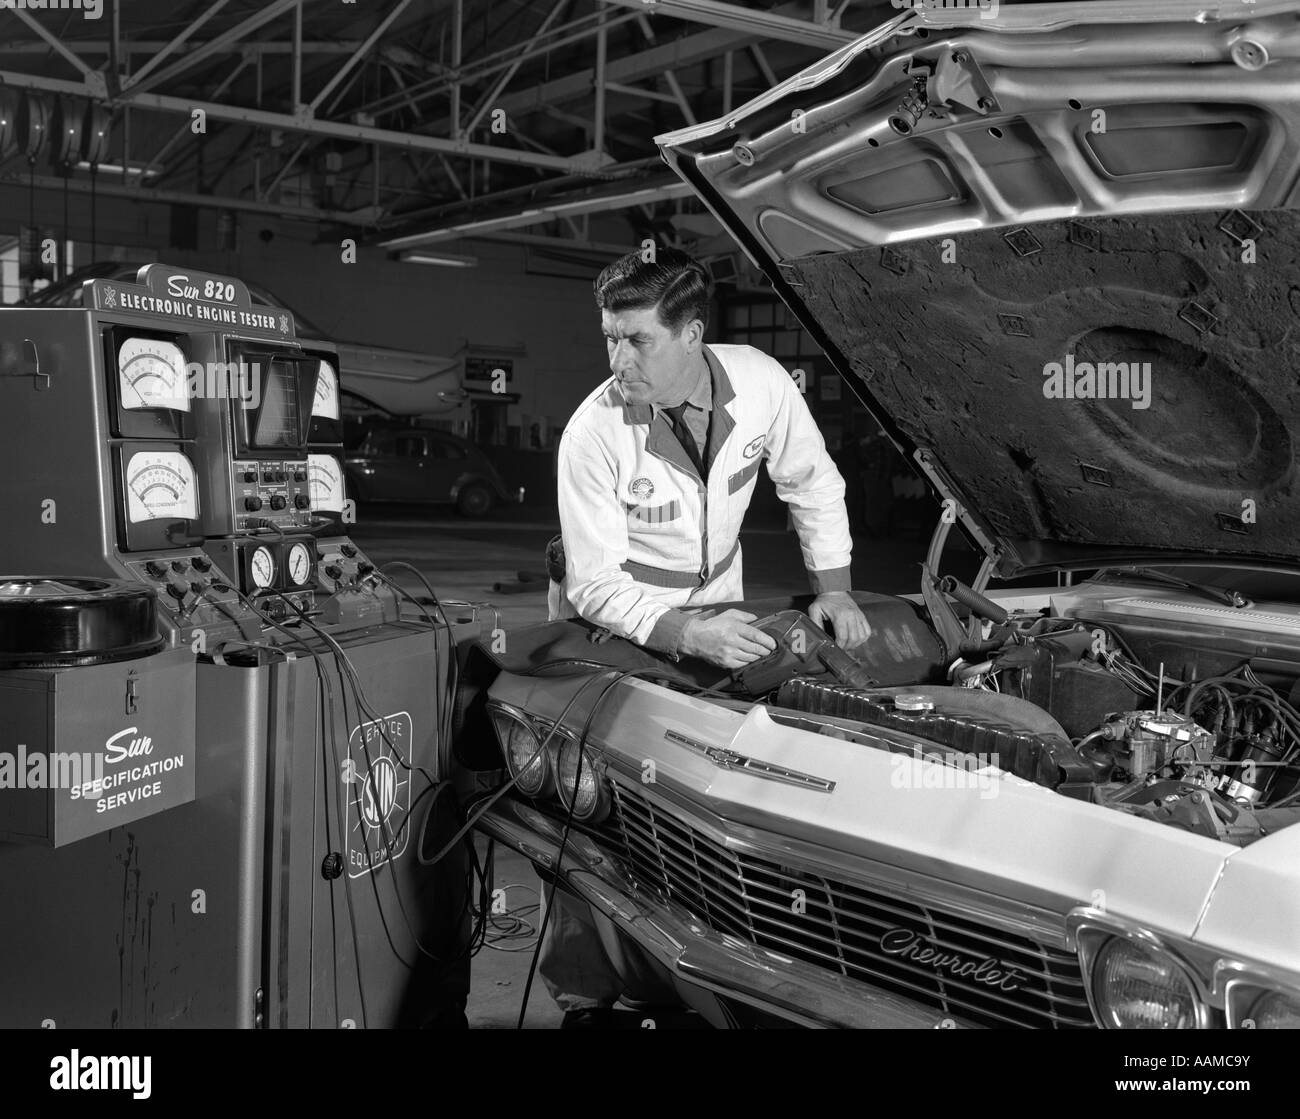 Salesperson 1960s Stock Photos & Salesperson 1960s Stock Images - Alamy